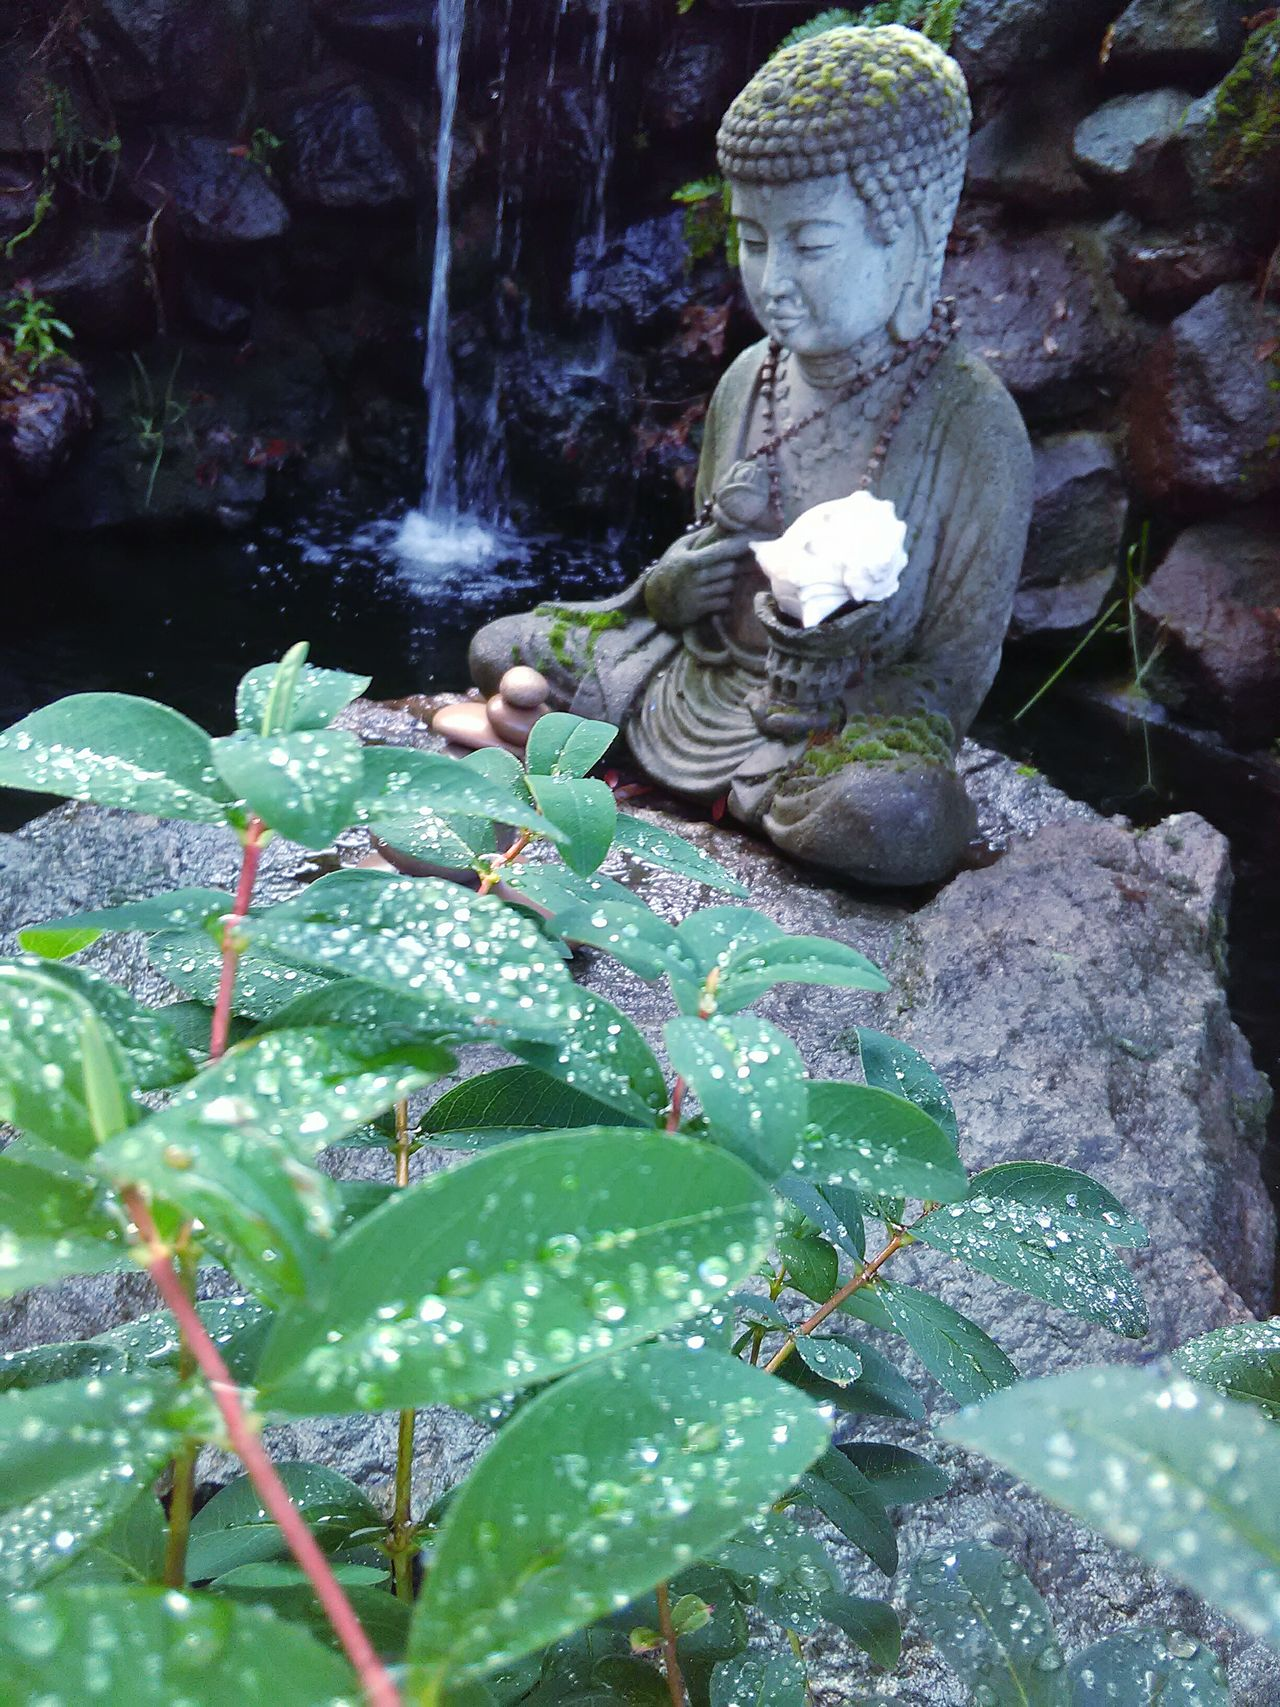 Rain Drops On Leaves Rain Drops Garden Statue Zen Rocks Japa Beads Leaves🌿 Water Drops My Point Of View Waterfall Rocks And Water Rainy Days☔ Meditation Garden Water Splashing EyeEm Nature Lover Koi Pond My Photography Garden Photography Plant Photography Plants 🌱 Zen Garden